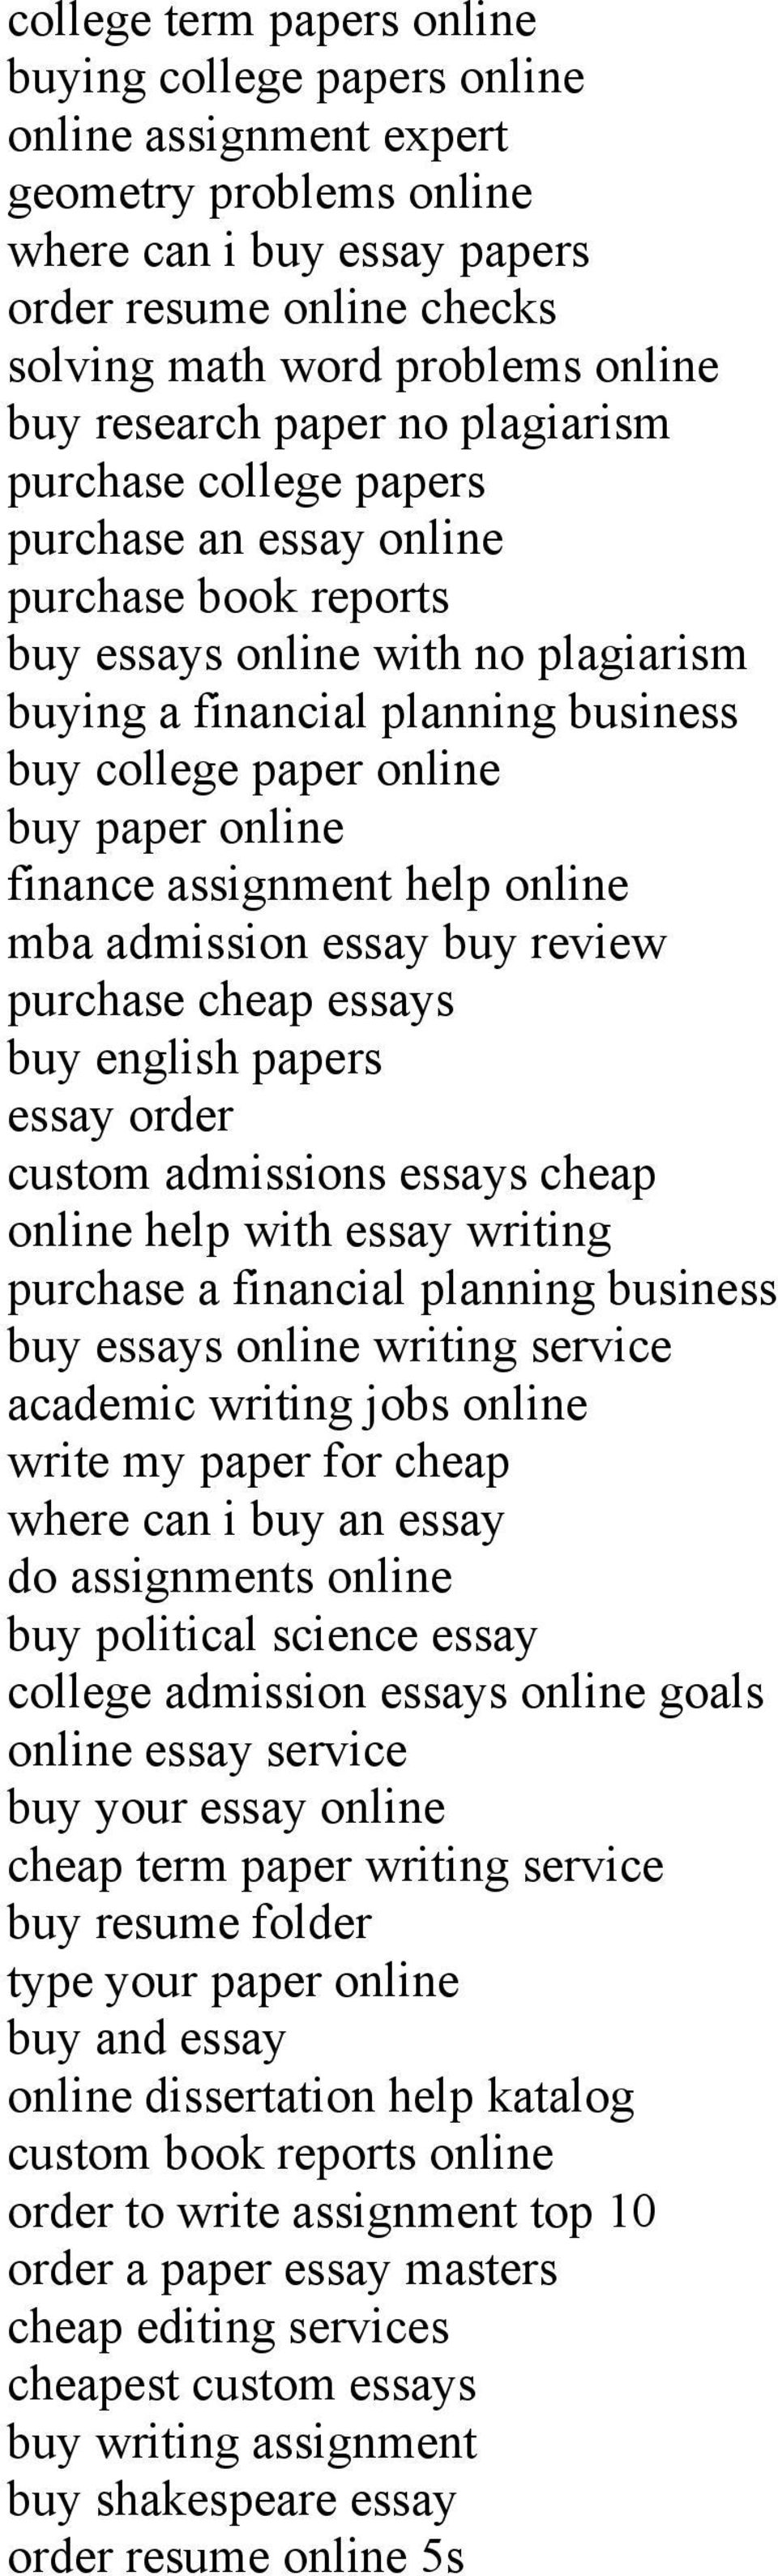 buy paper online finance assignment help online mba admission essay buy review purchase cheap essays buy english papers essay order custom admissions essays cheap online help with essay writing